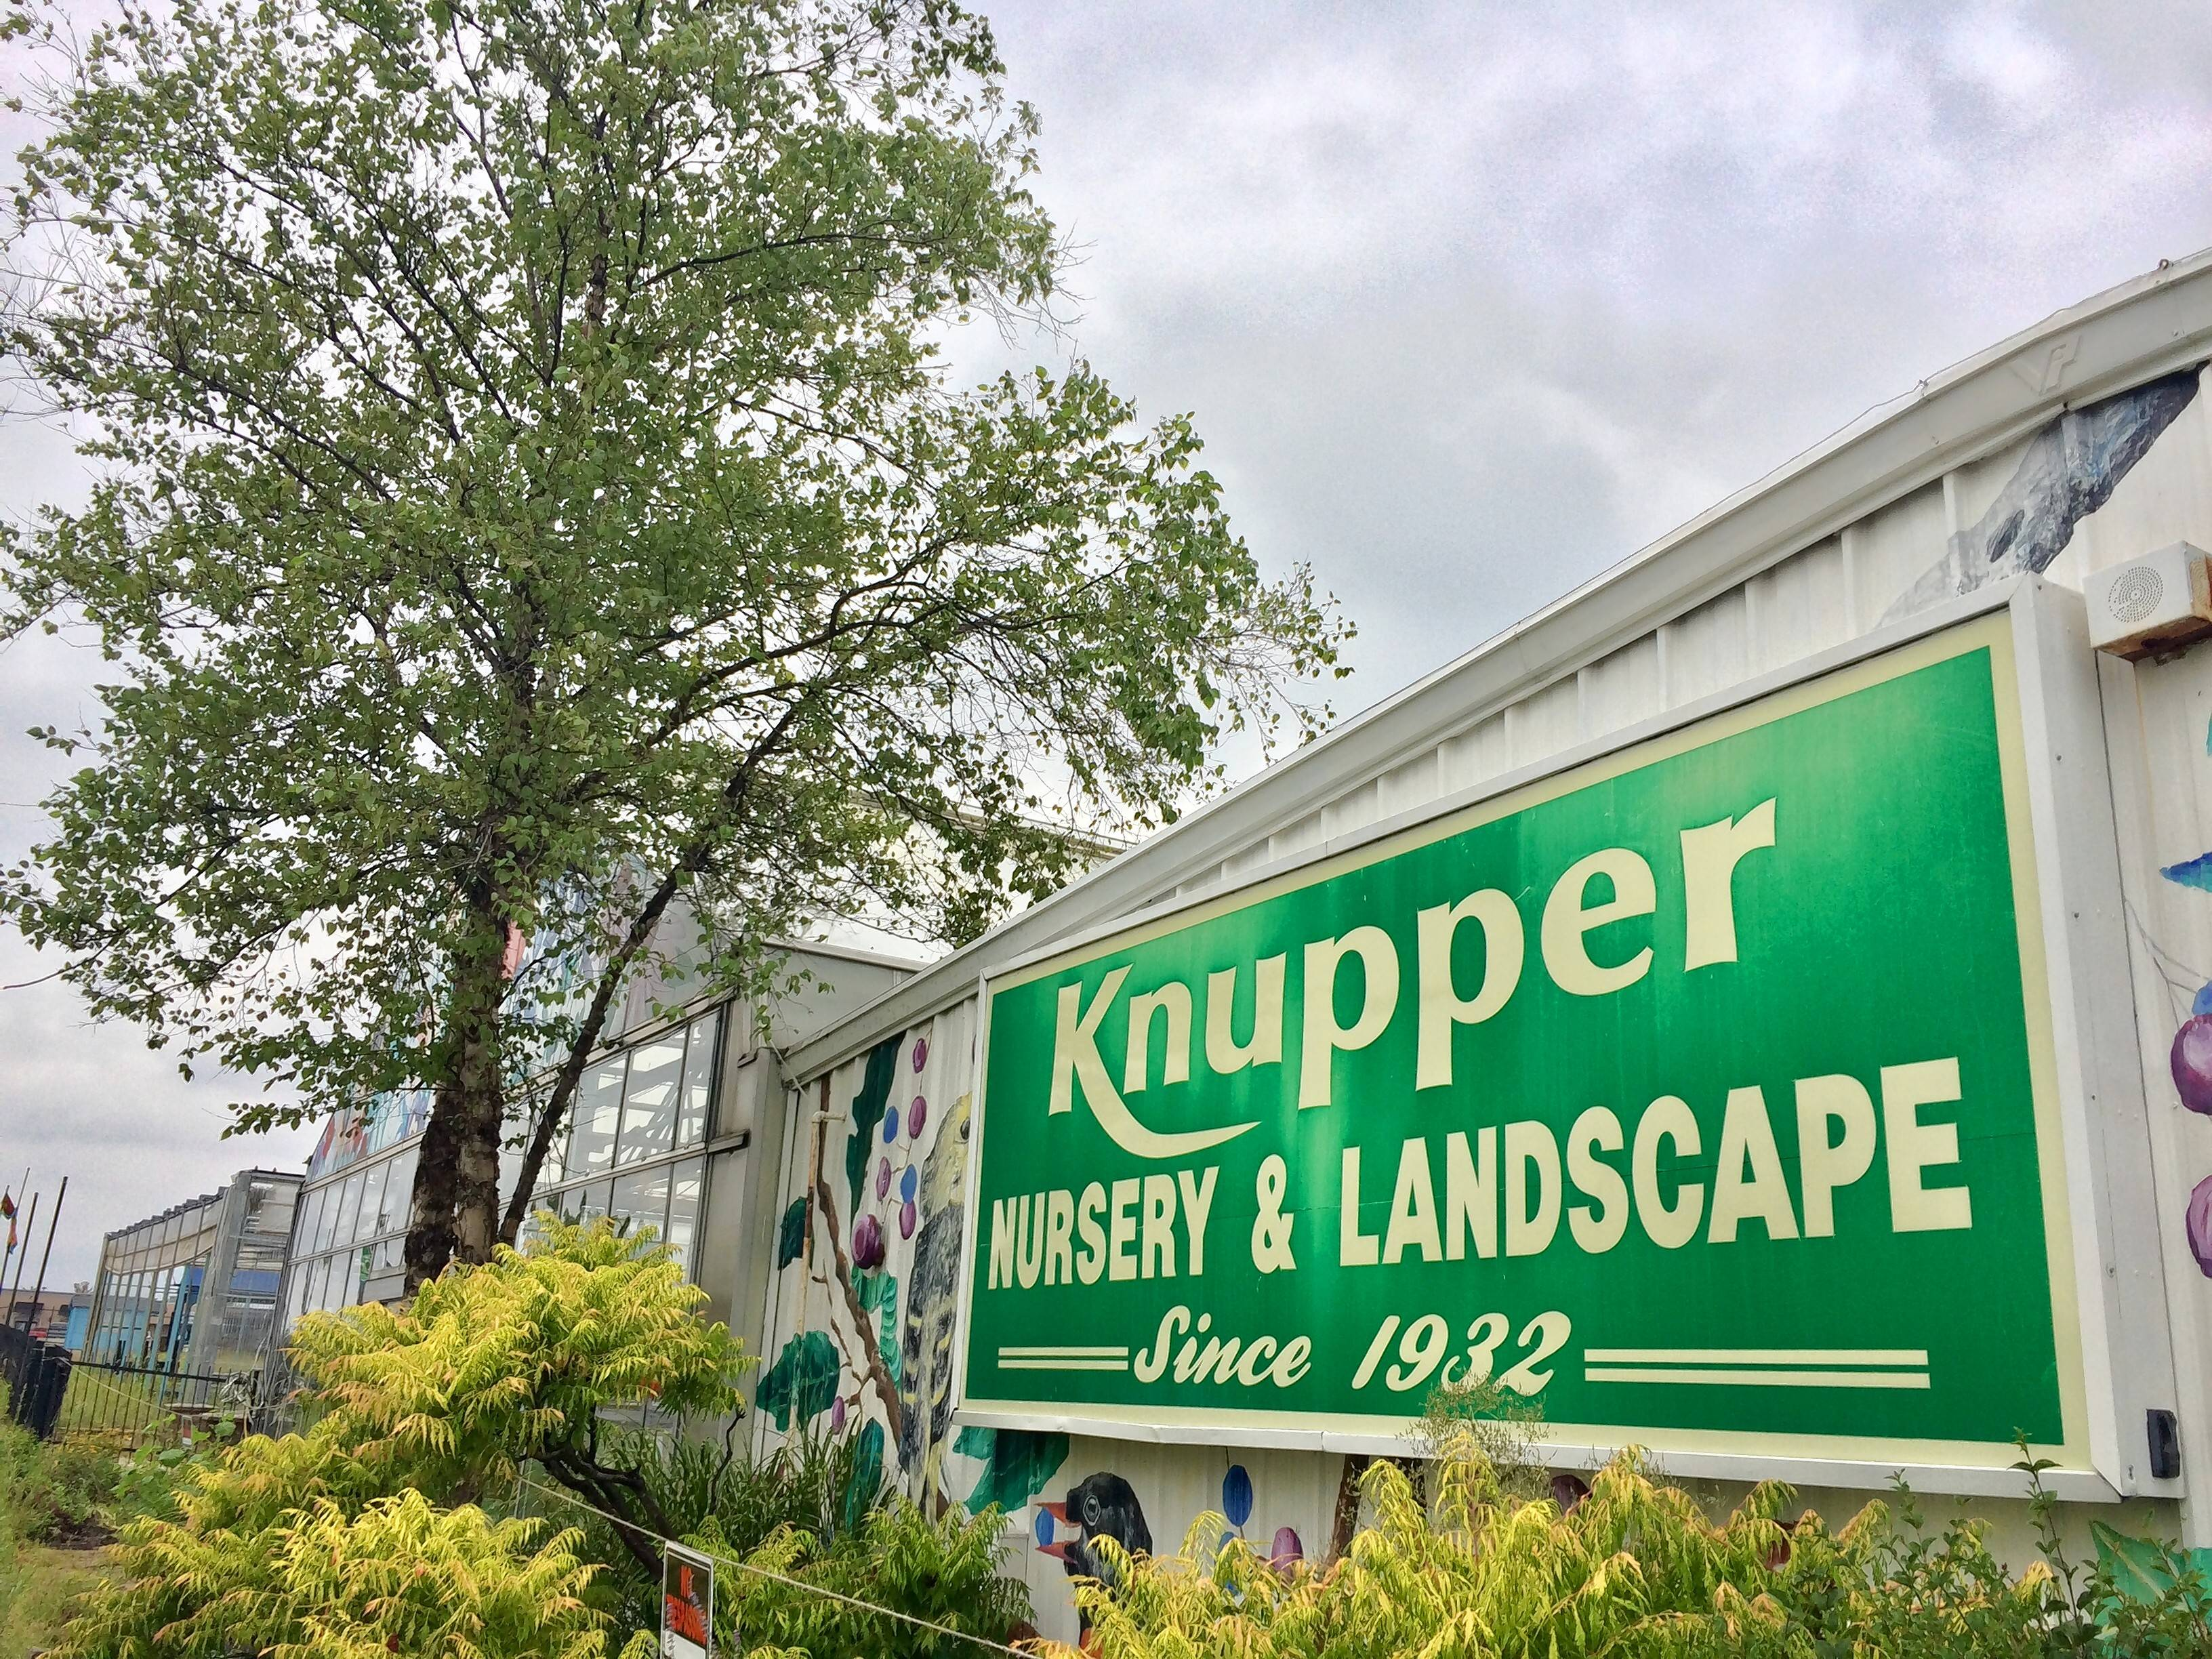 After ending an 86-year run in June, Knupper Nursery and Landscape will make a comeback of sorts next year on the same Rand Road site, but with a different owner and format.